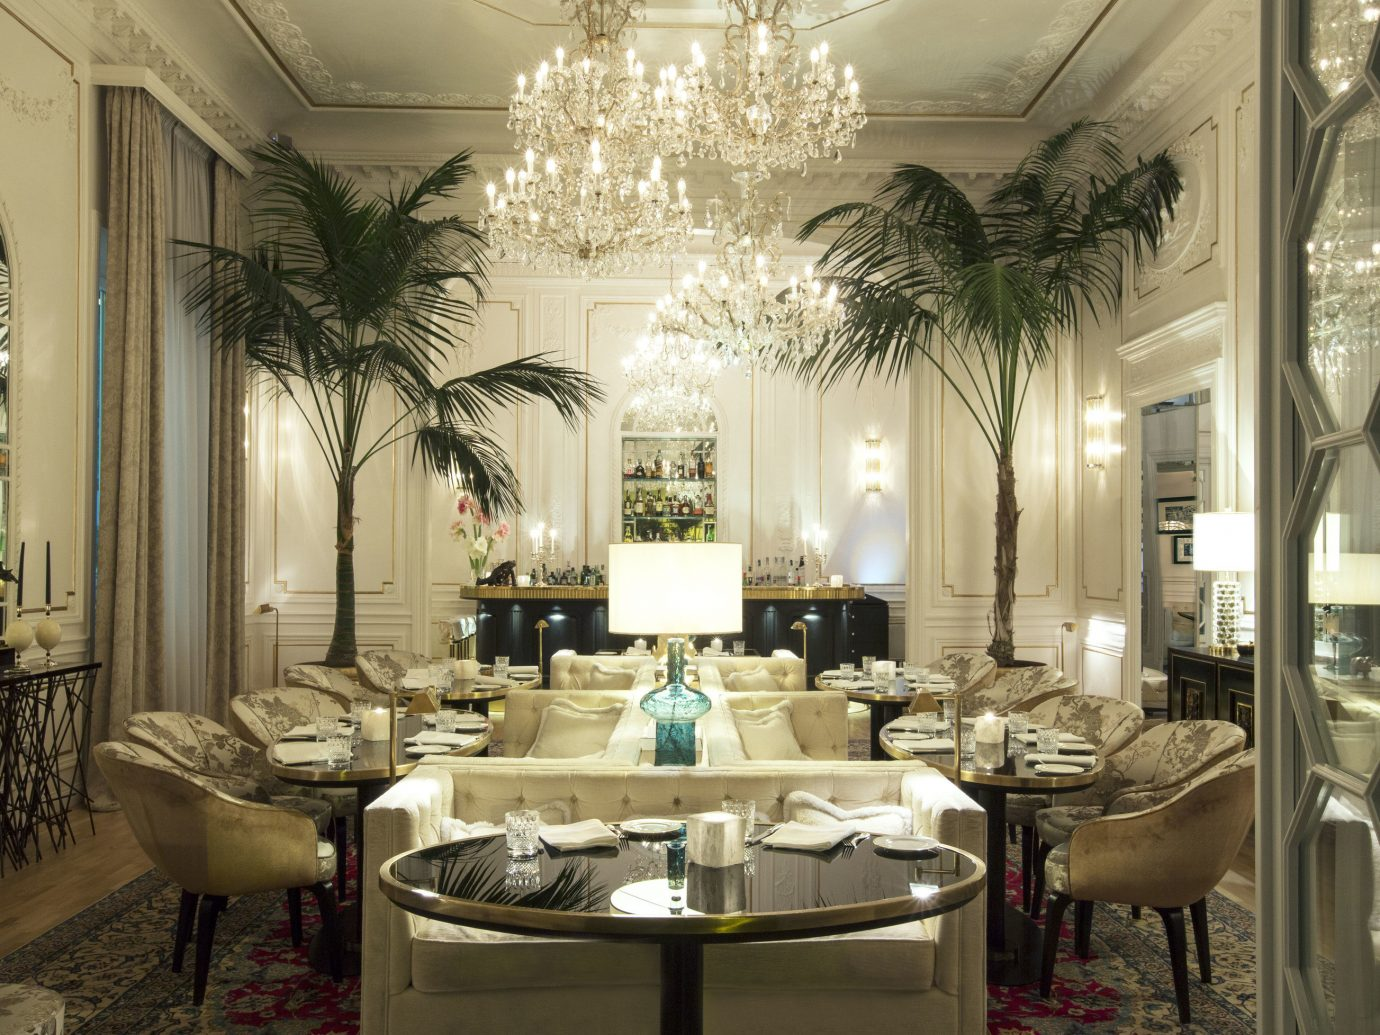 Boutique Hotels Hotels Trip Ideas indoor room property estate dining room Lobby mansion interior design home palace restaurant living room meal ballroom function hall furniture several